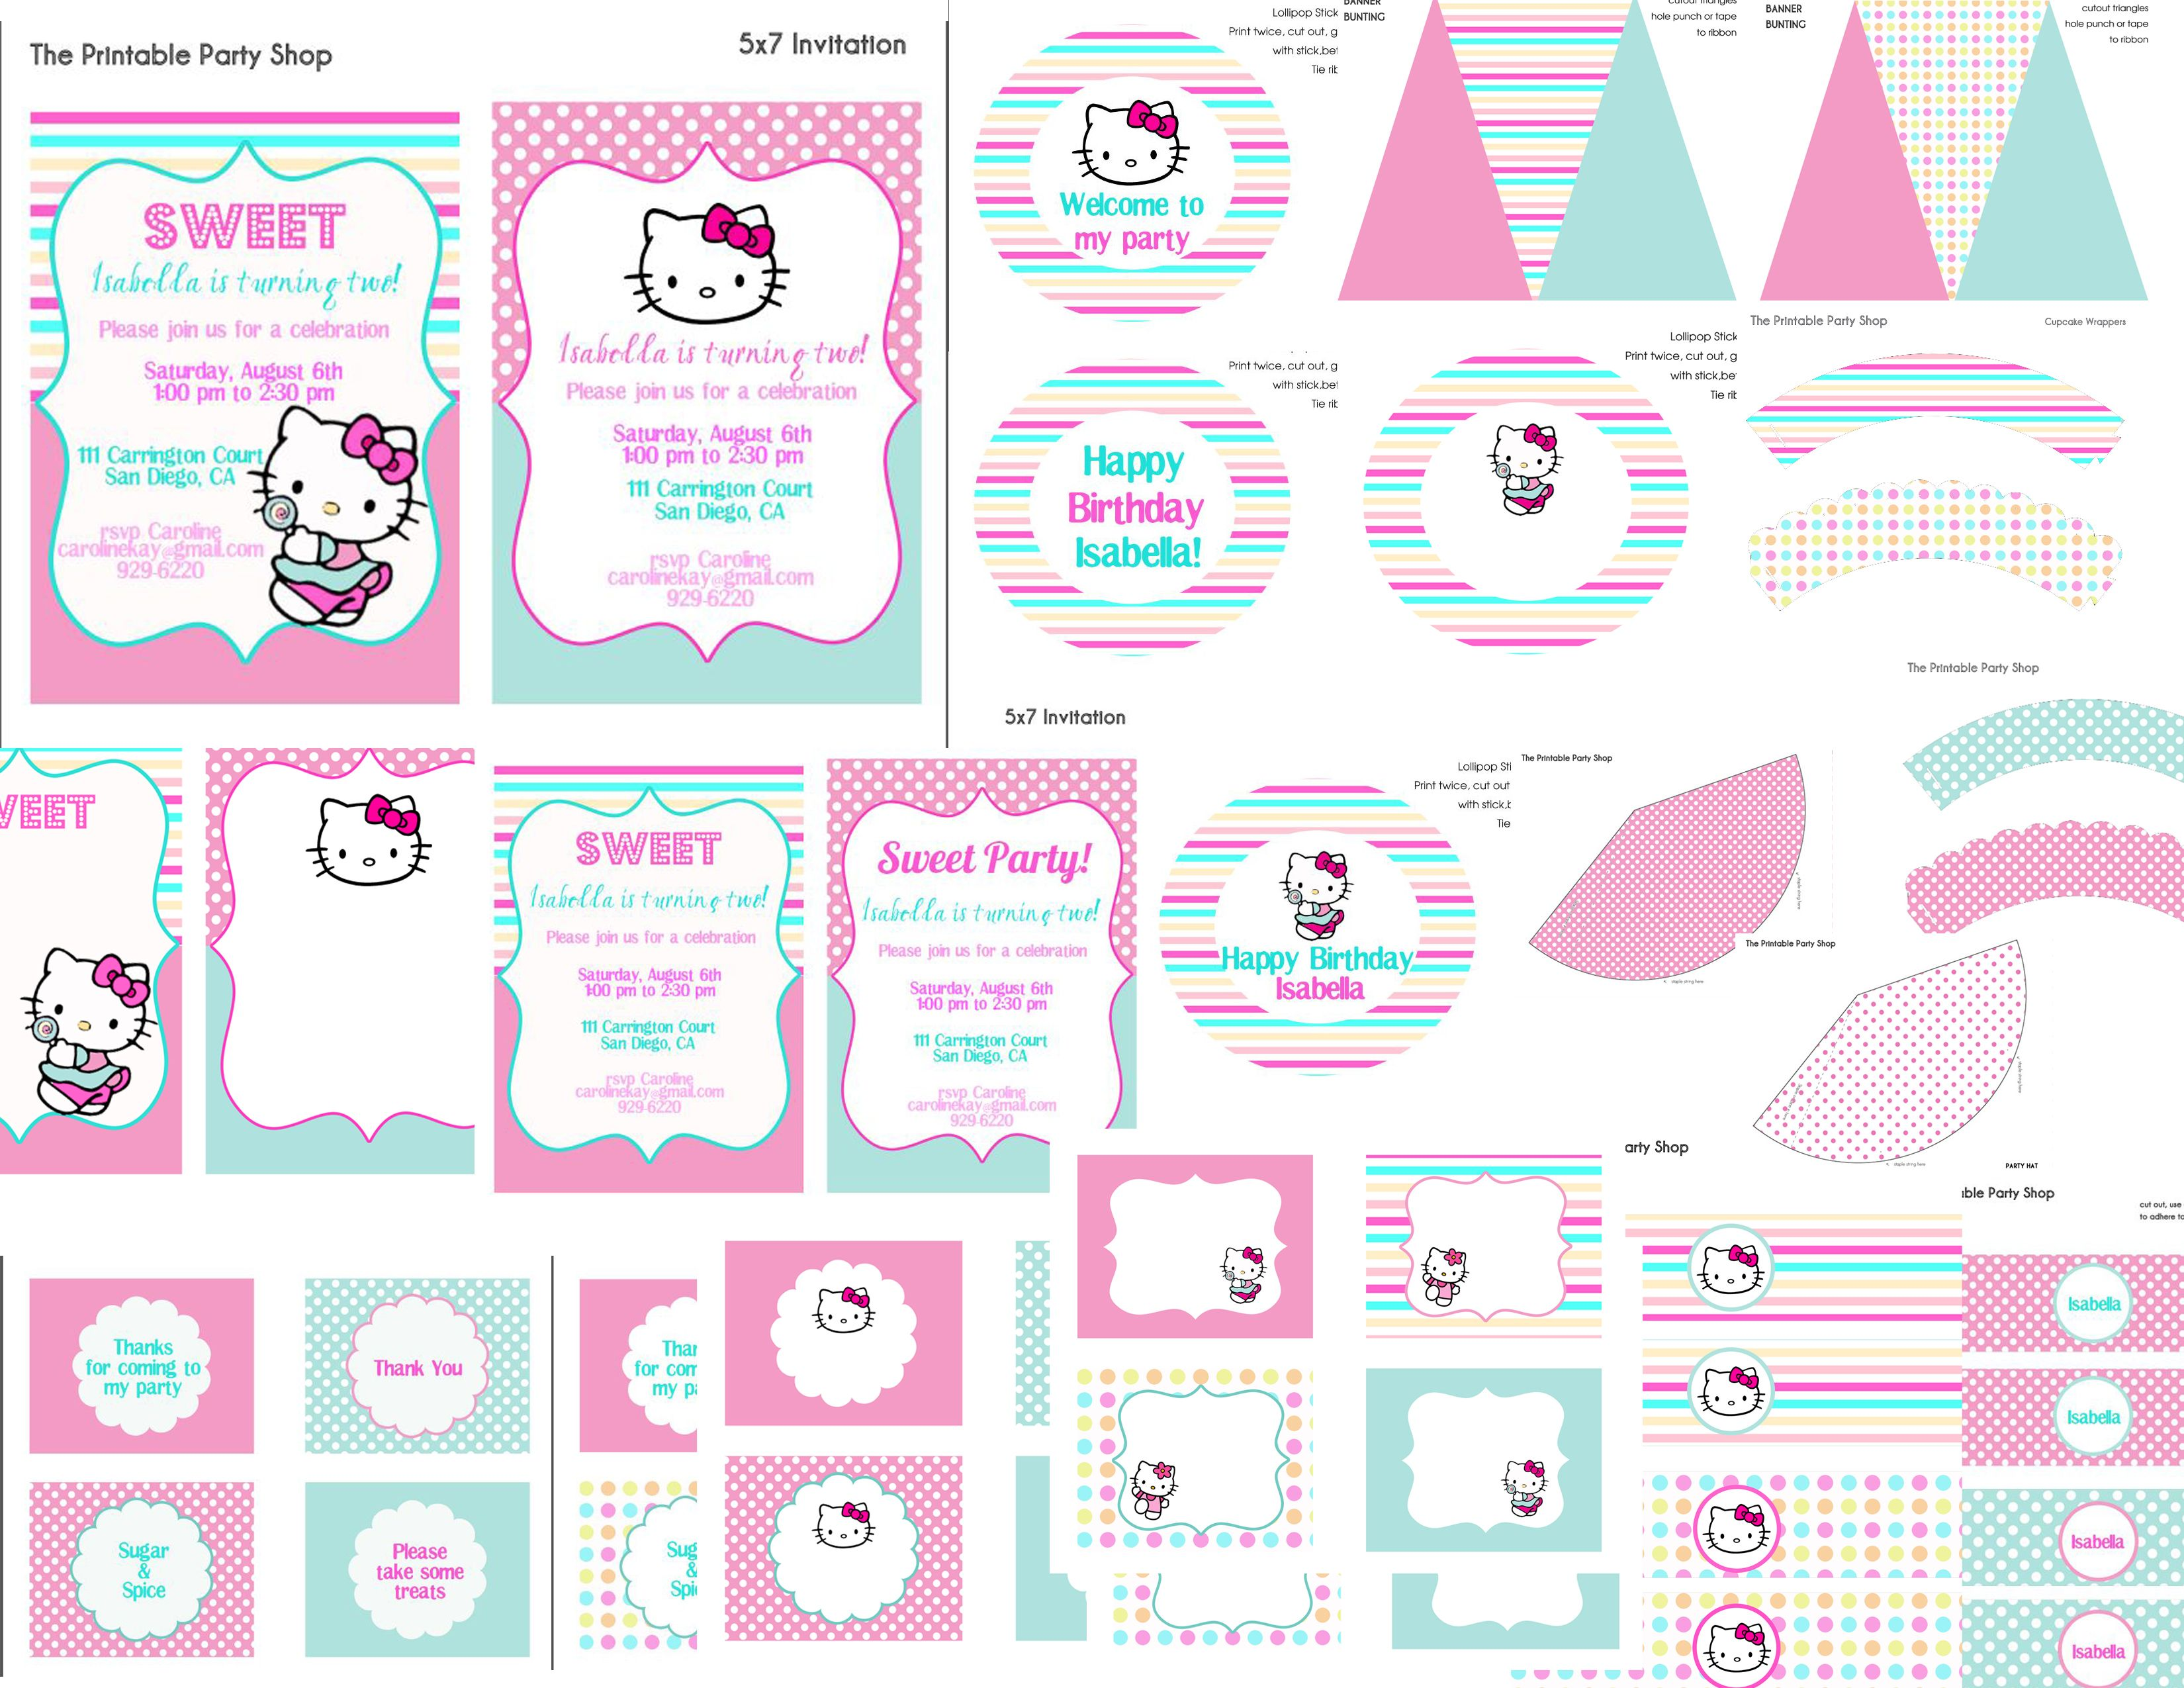 Hello kitty printable party set printable party pinterest hello kitty birthday party cute party ideas and inspiration plus free printables invitations favor tags party signs decorations cupcake toppers stopboris Image collections